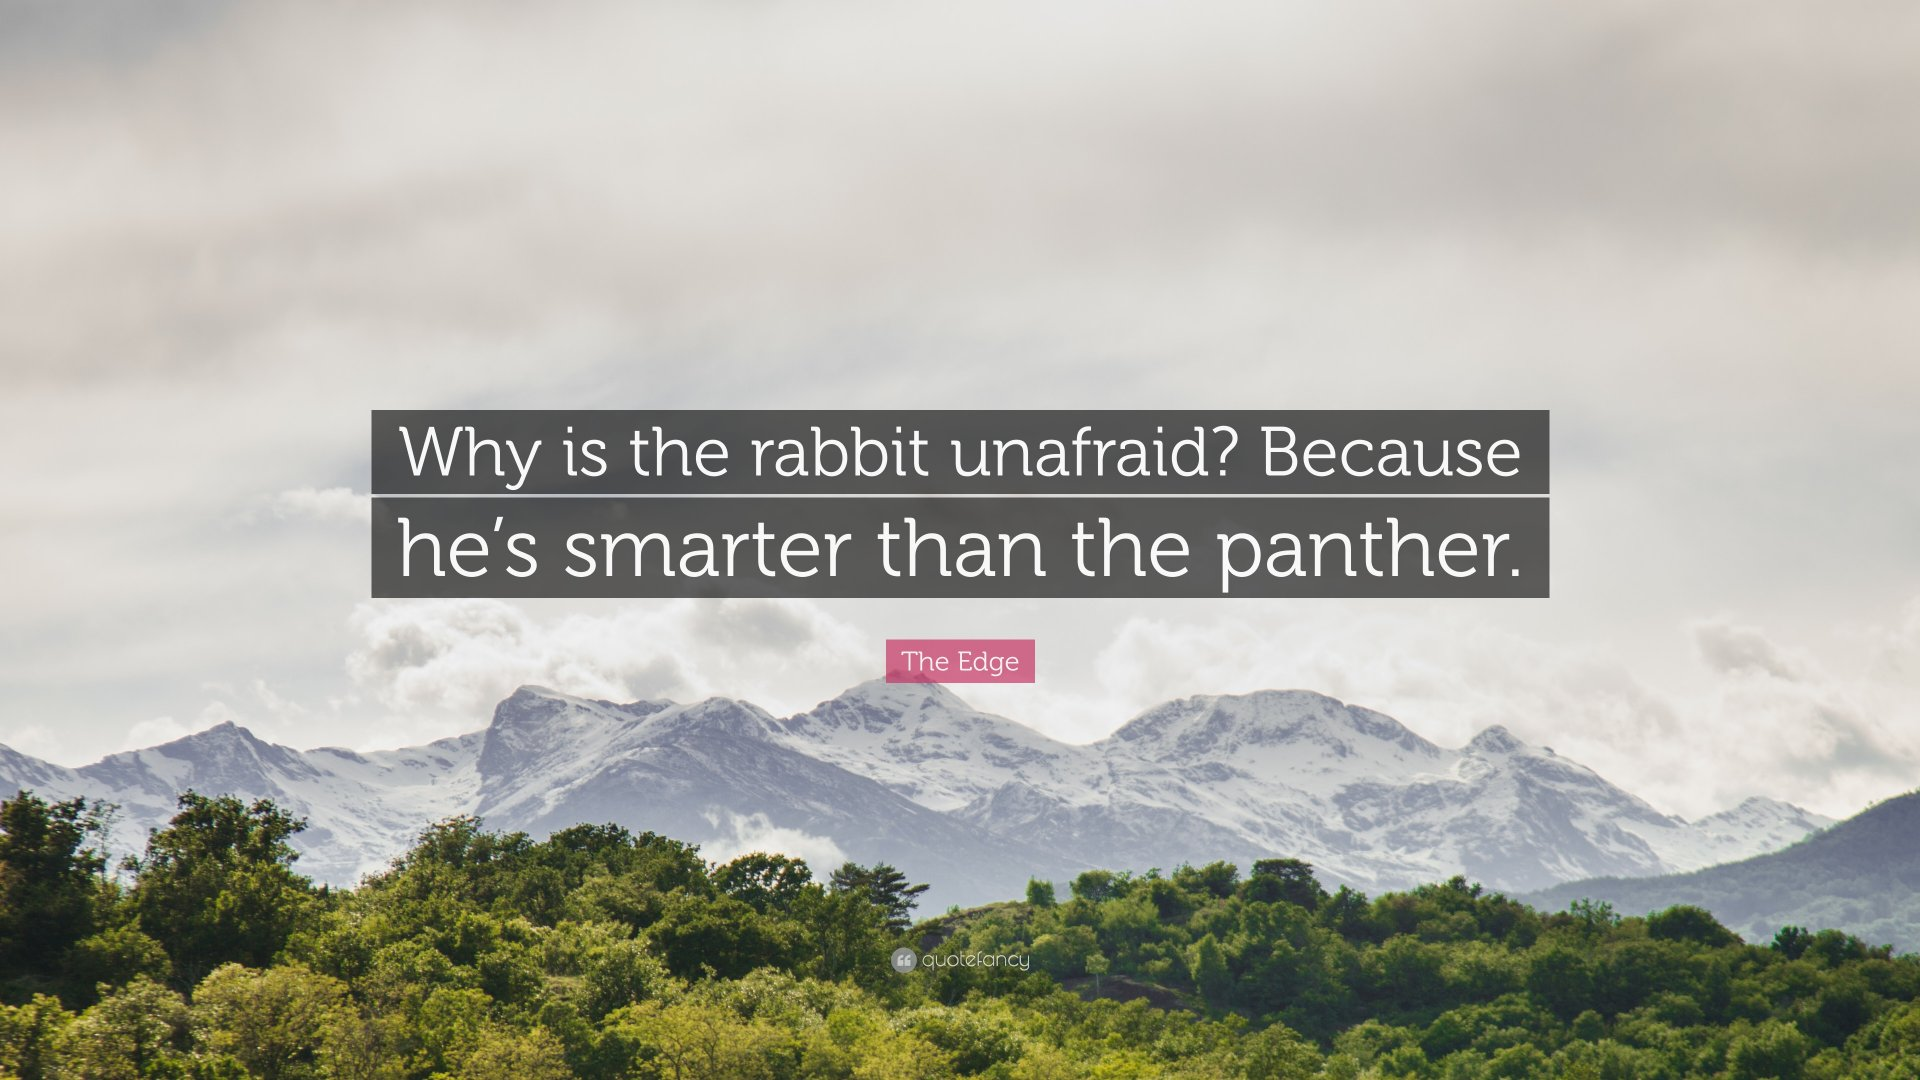 1560722-The-Edge-Quote-Why-is-the-rabbit-unafraid-Because-he-s-smarter.jpg